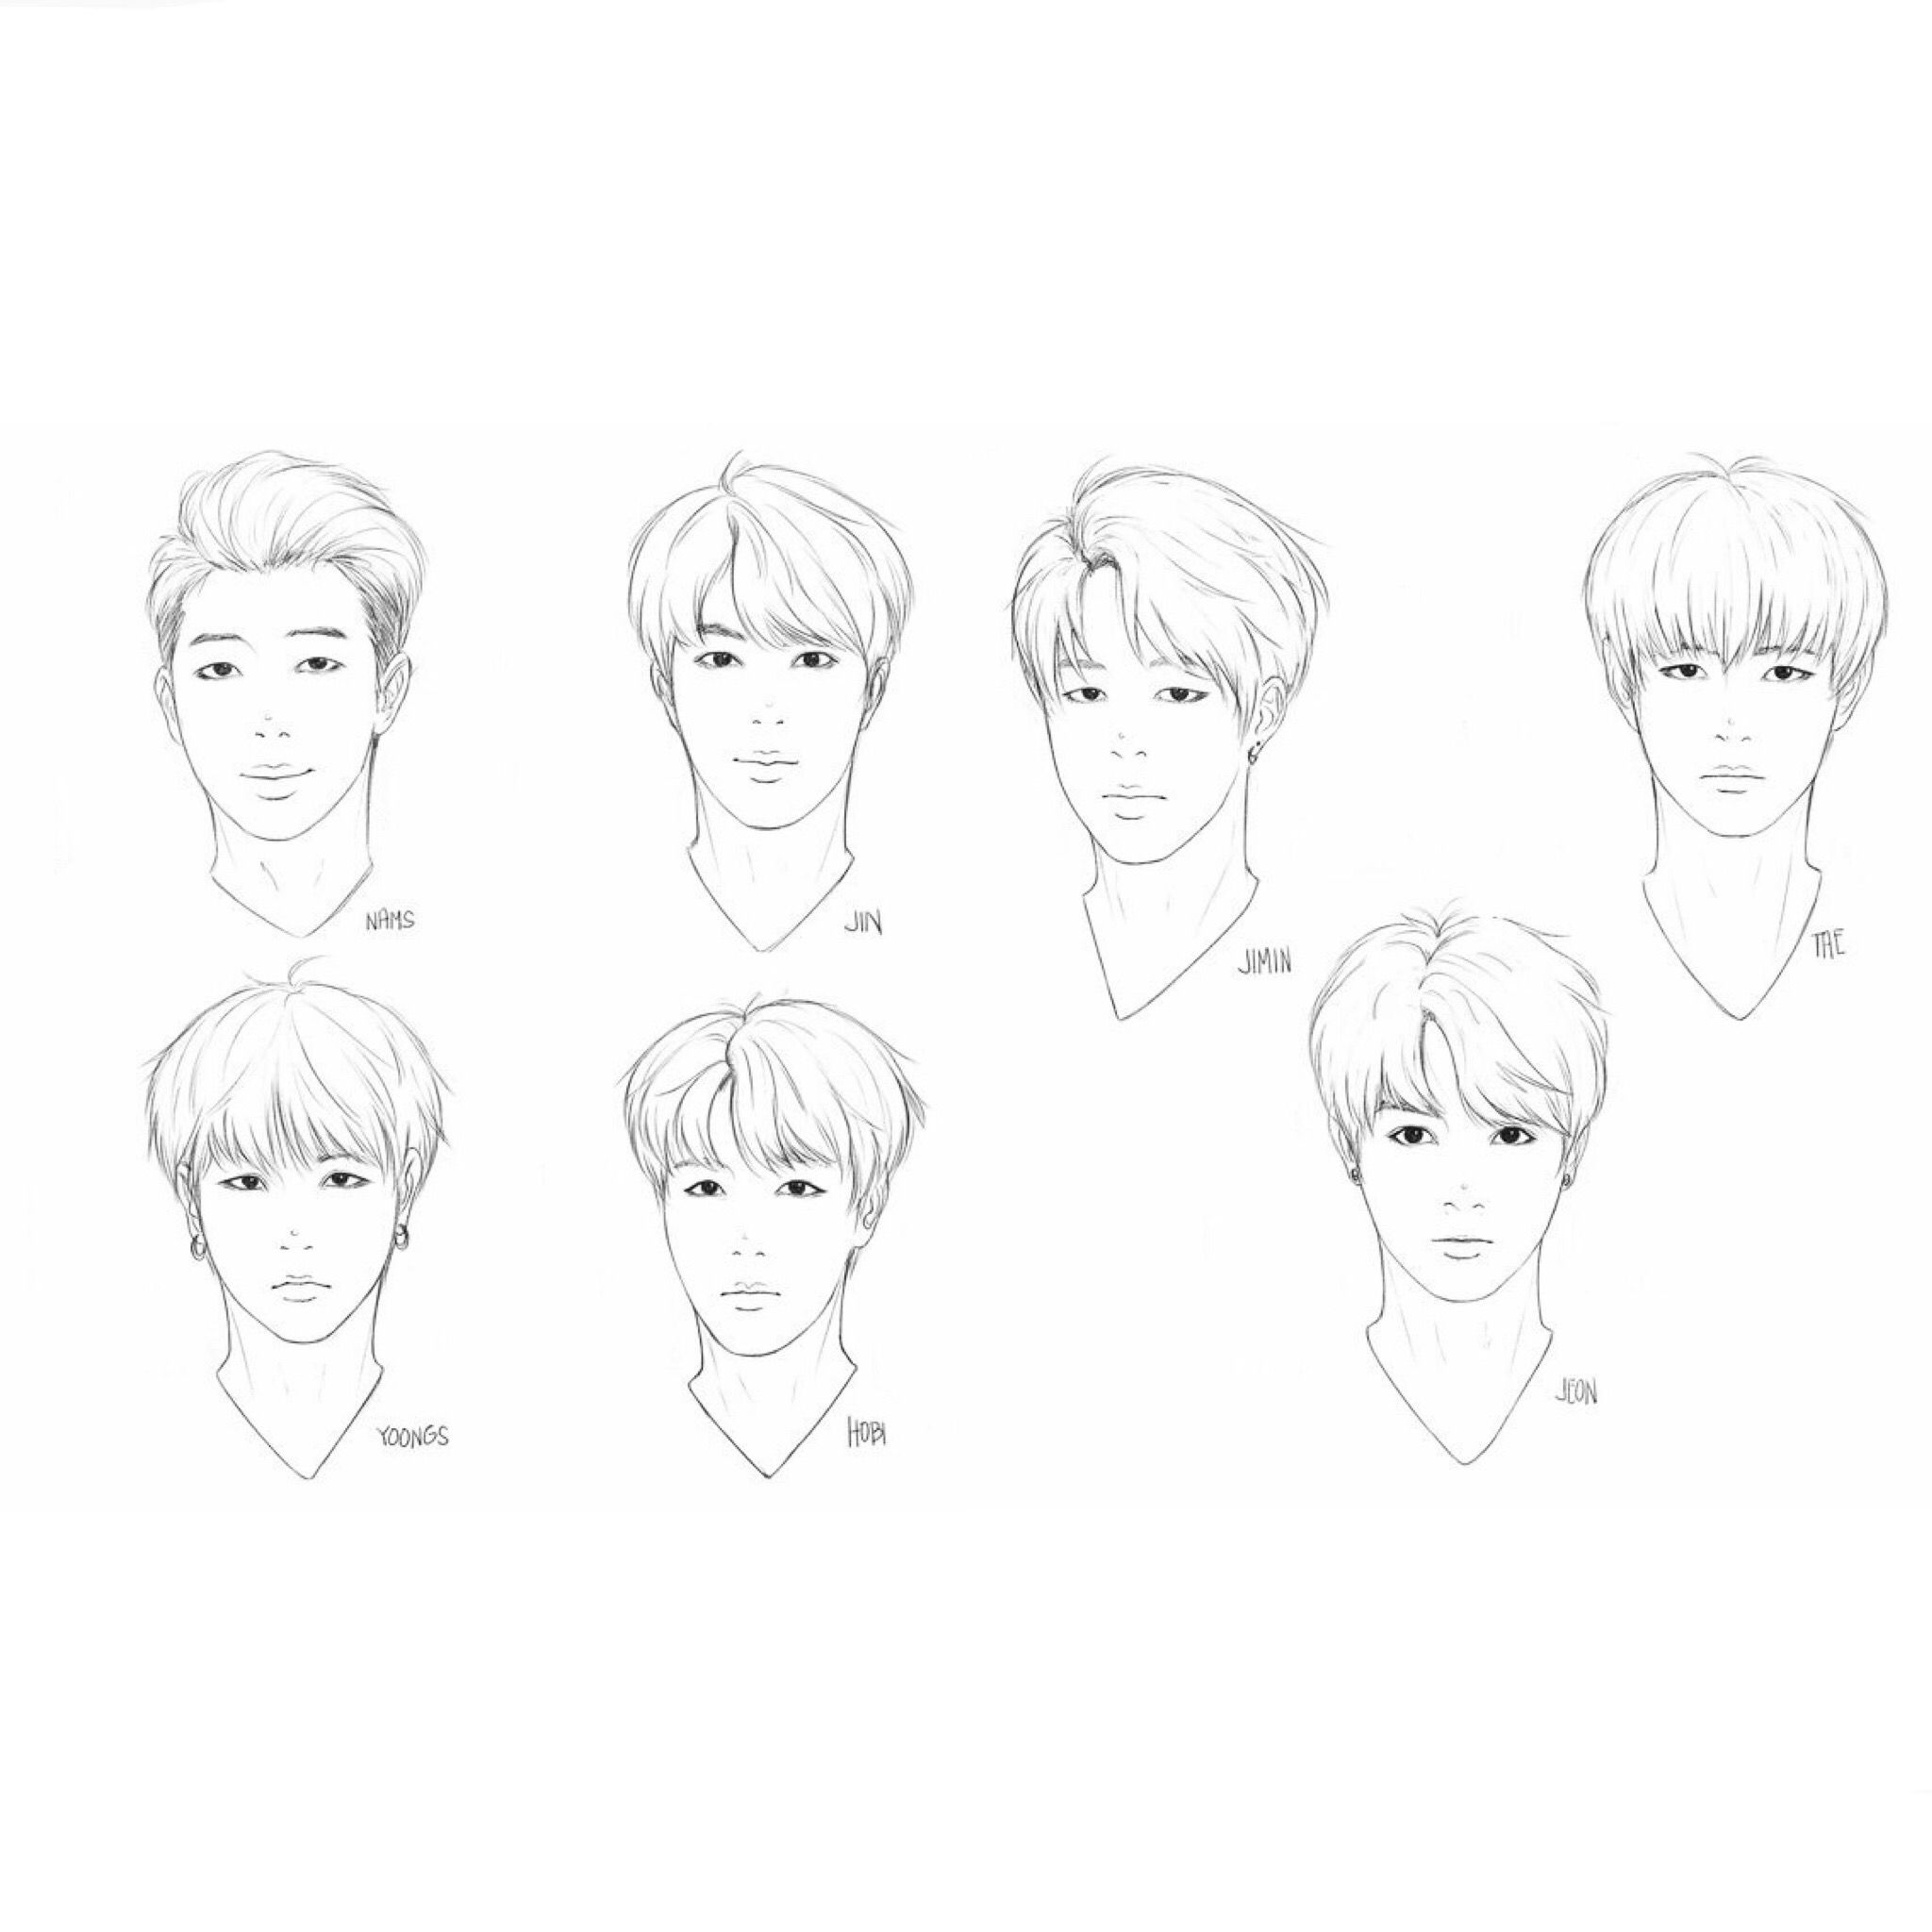 Bts Face Study Bts Drawings Art Drawings